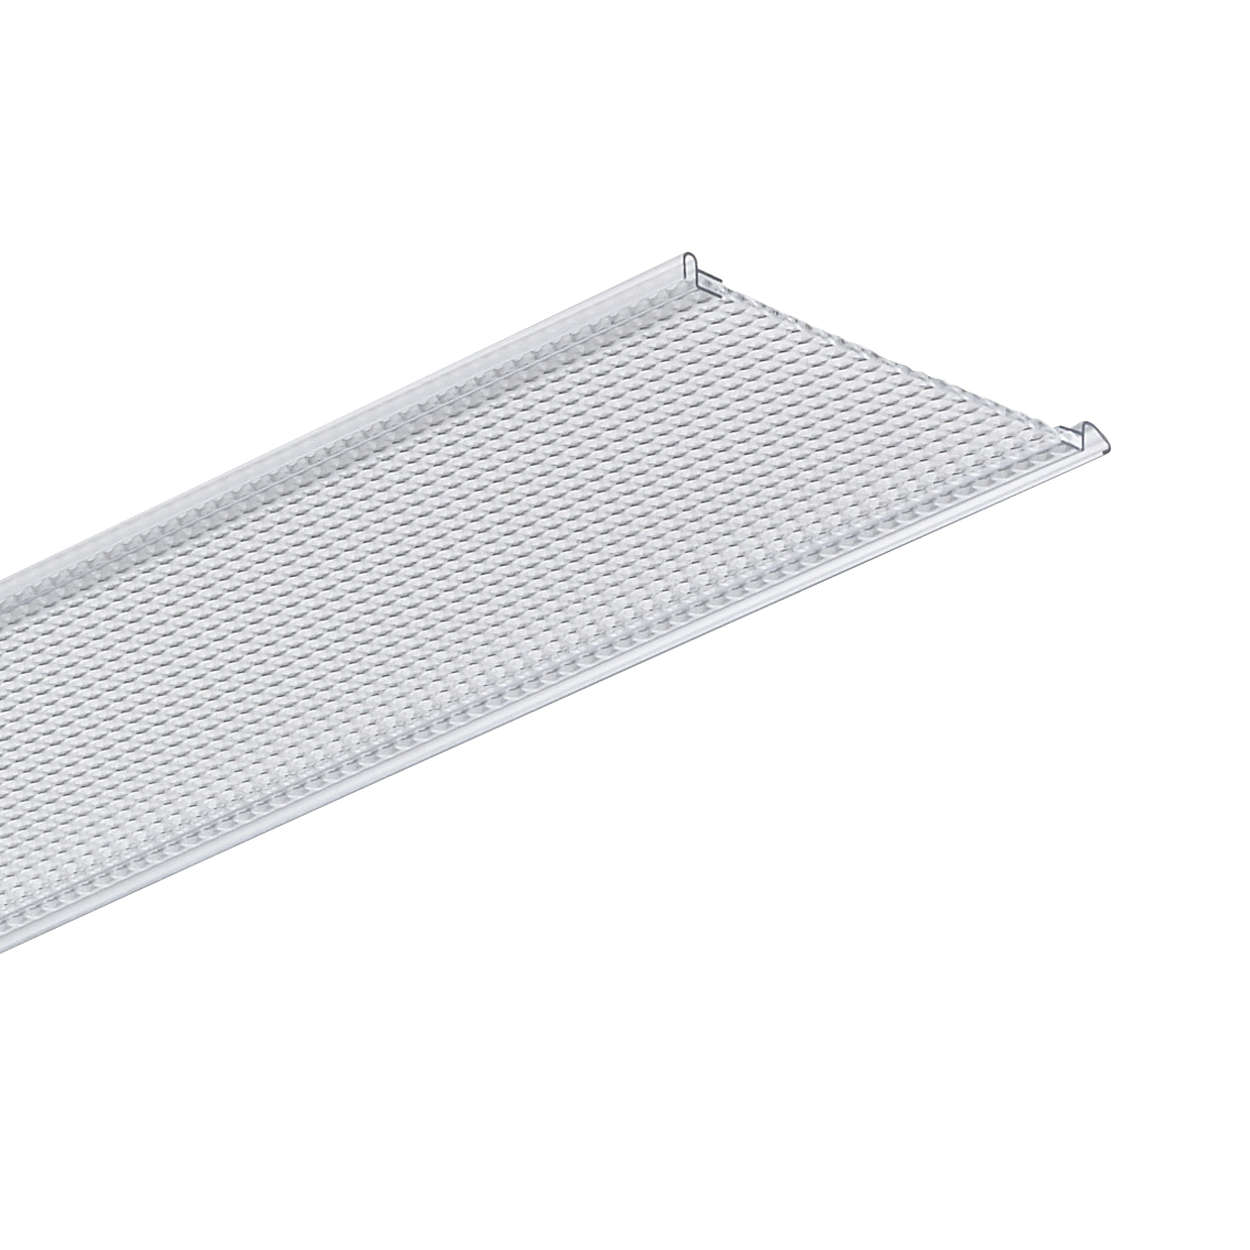 Maxos TL-D Universal reflectors and optics – One basic solution for multiple applications